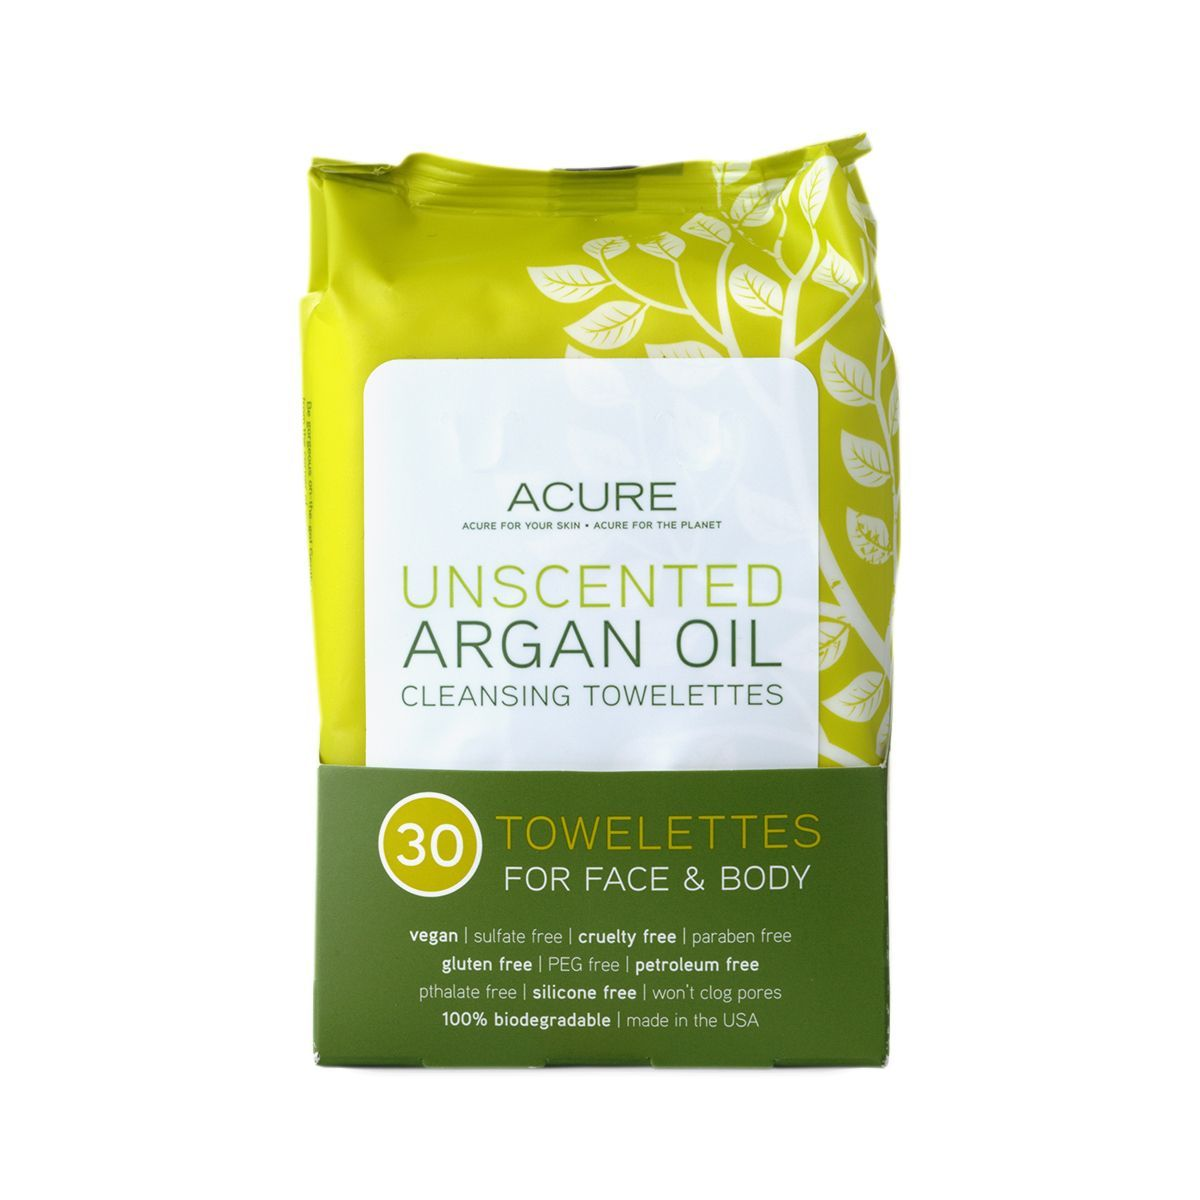 Acure Unscented Argan Oil Wipes #CoconutOilCleansingMask